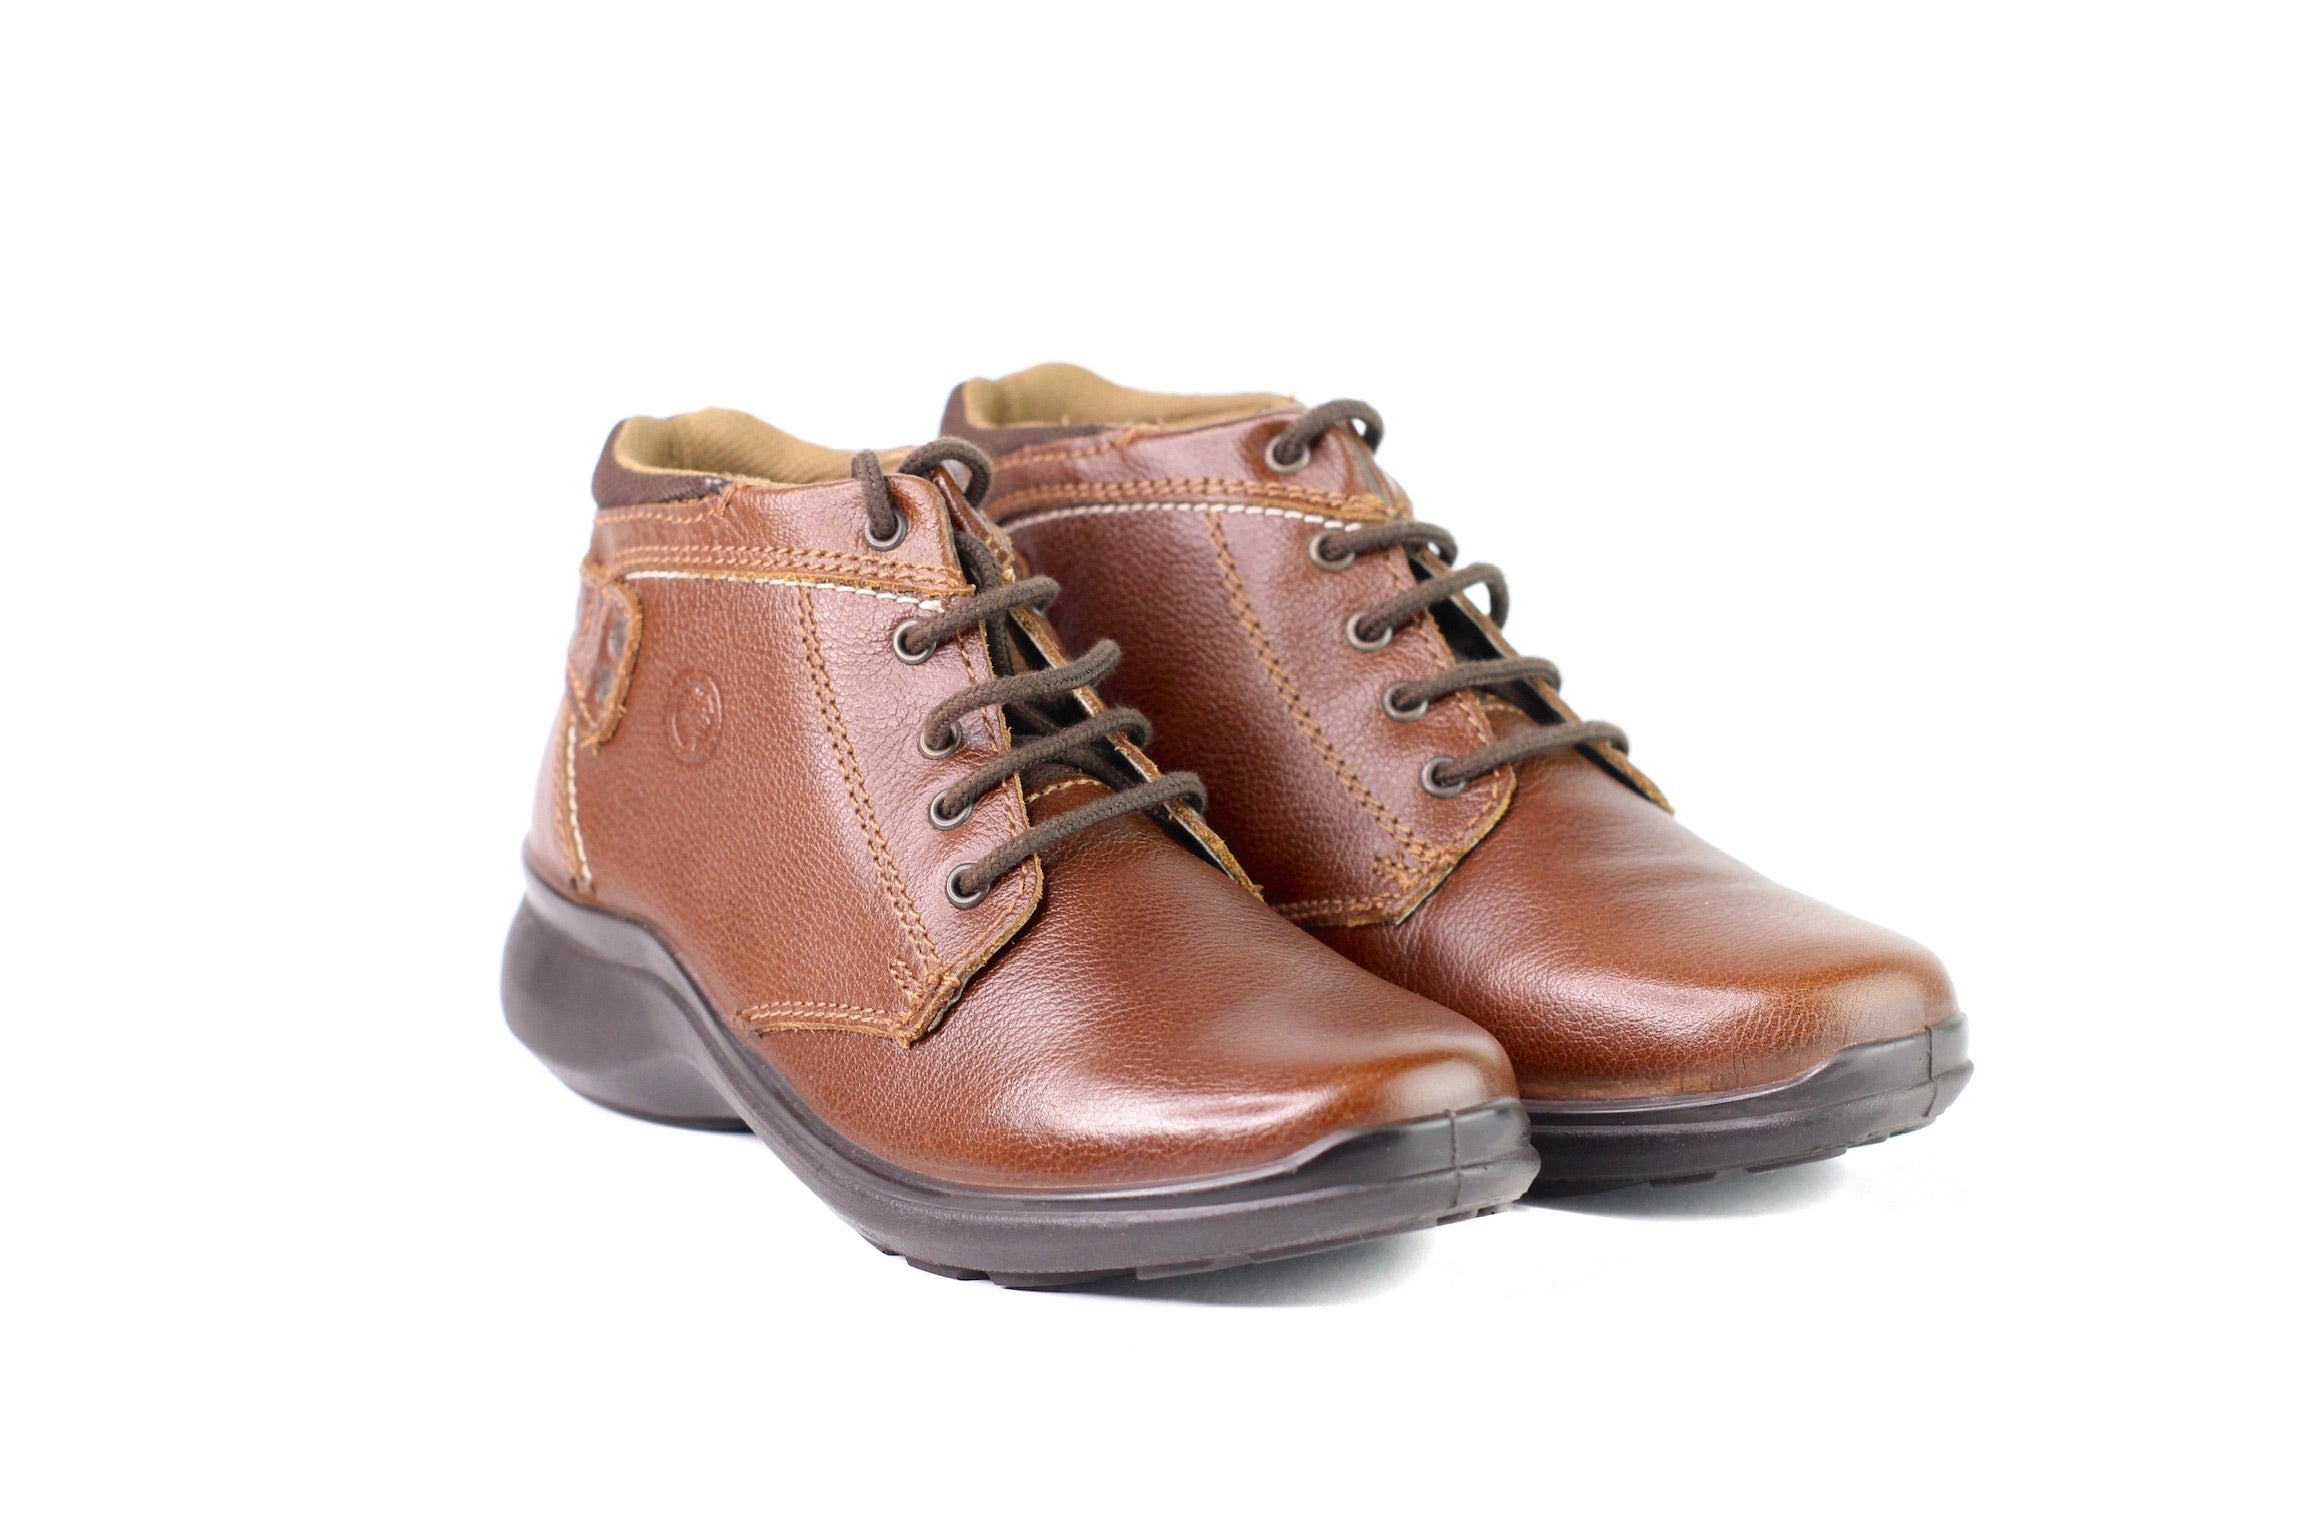 VT 8011 Lace-Up Leather Shoe